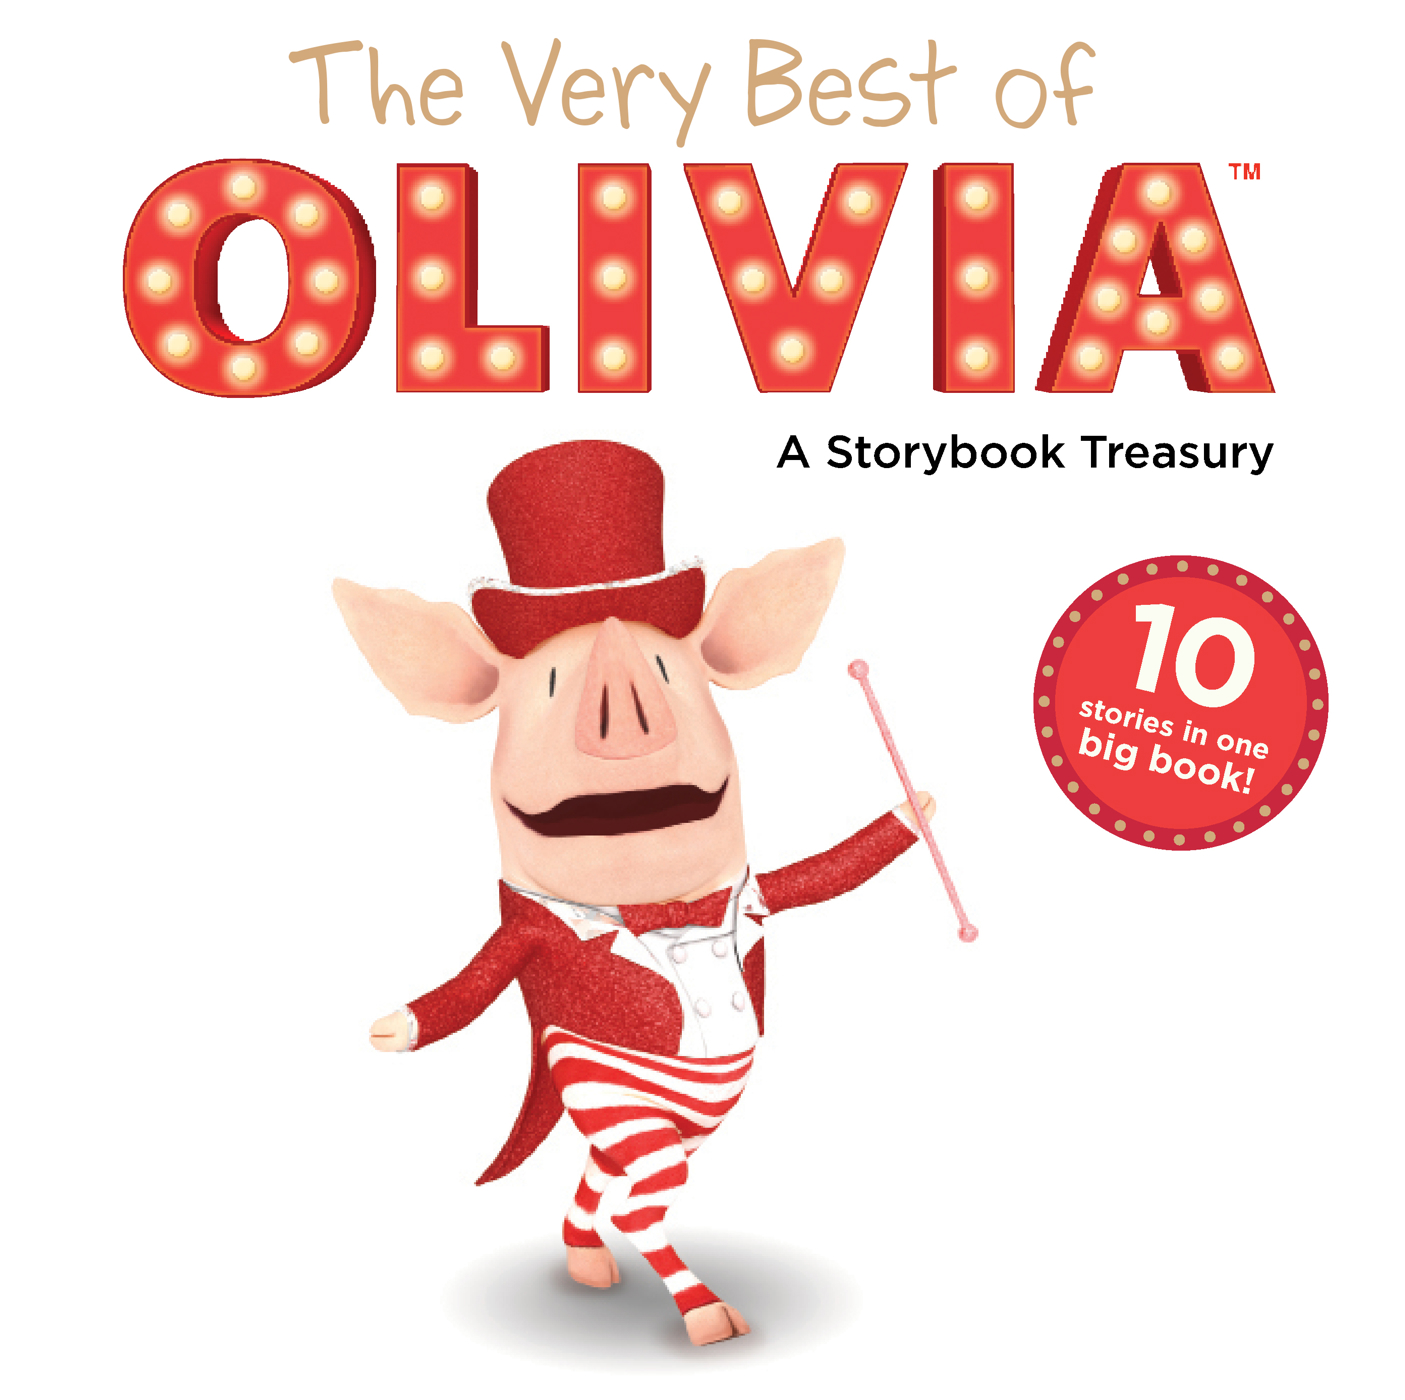 The very best of olivia 9781442485976 hr